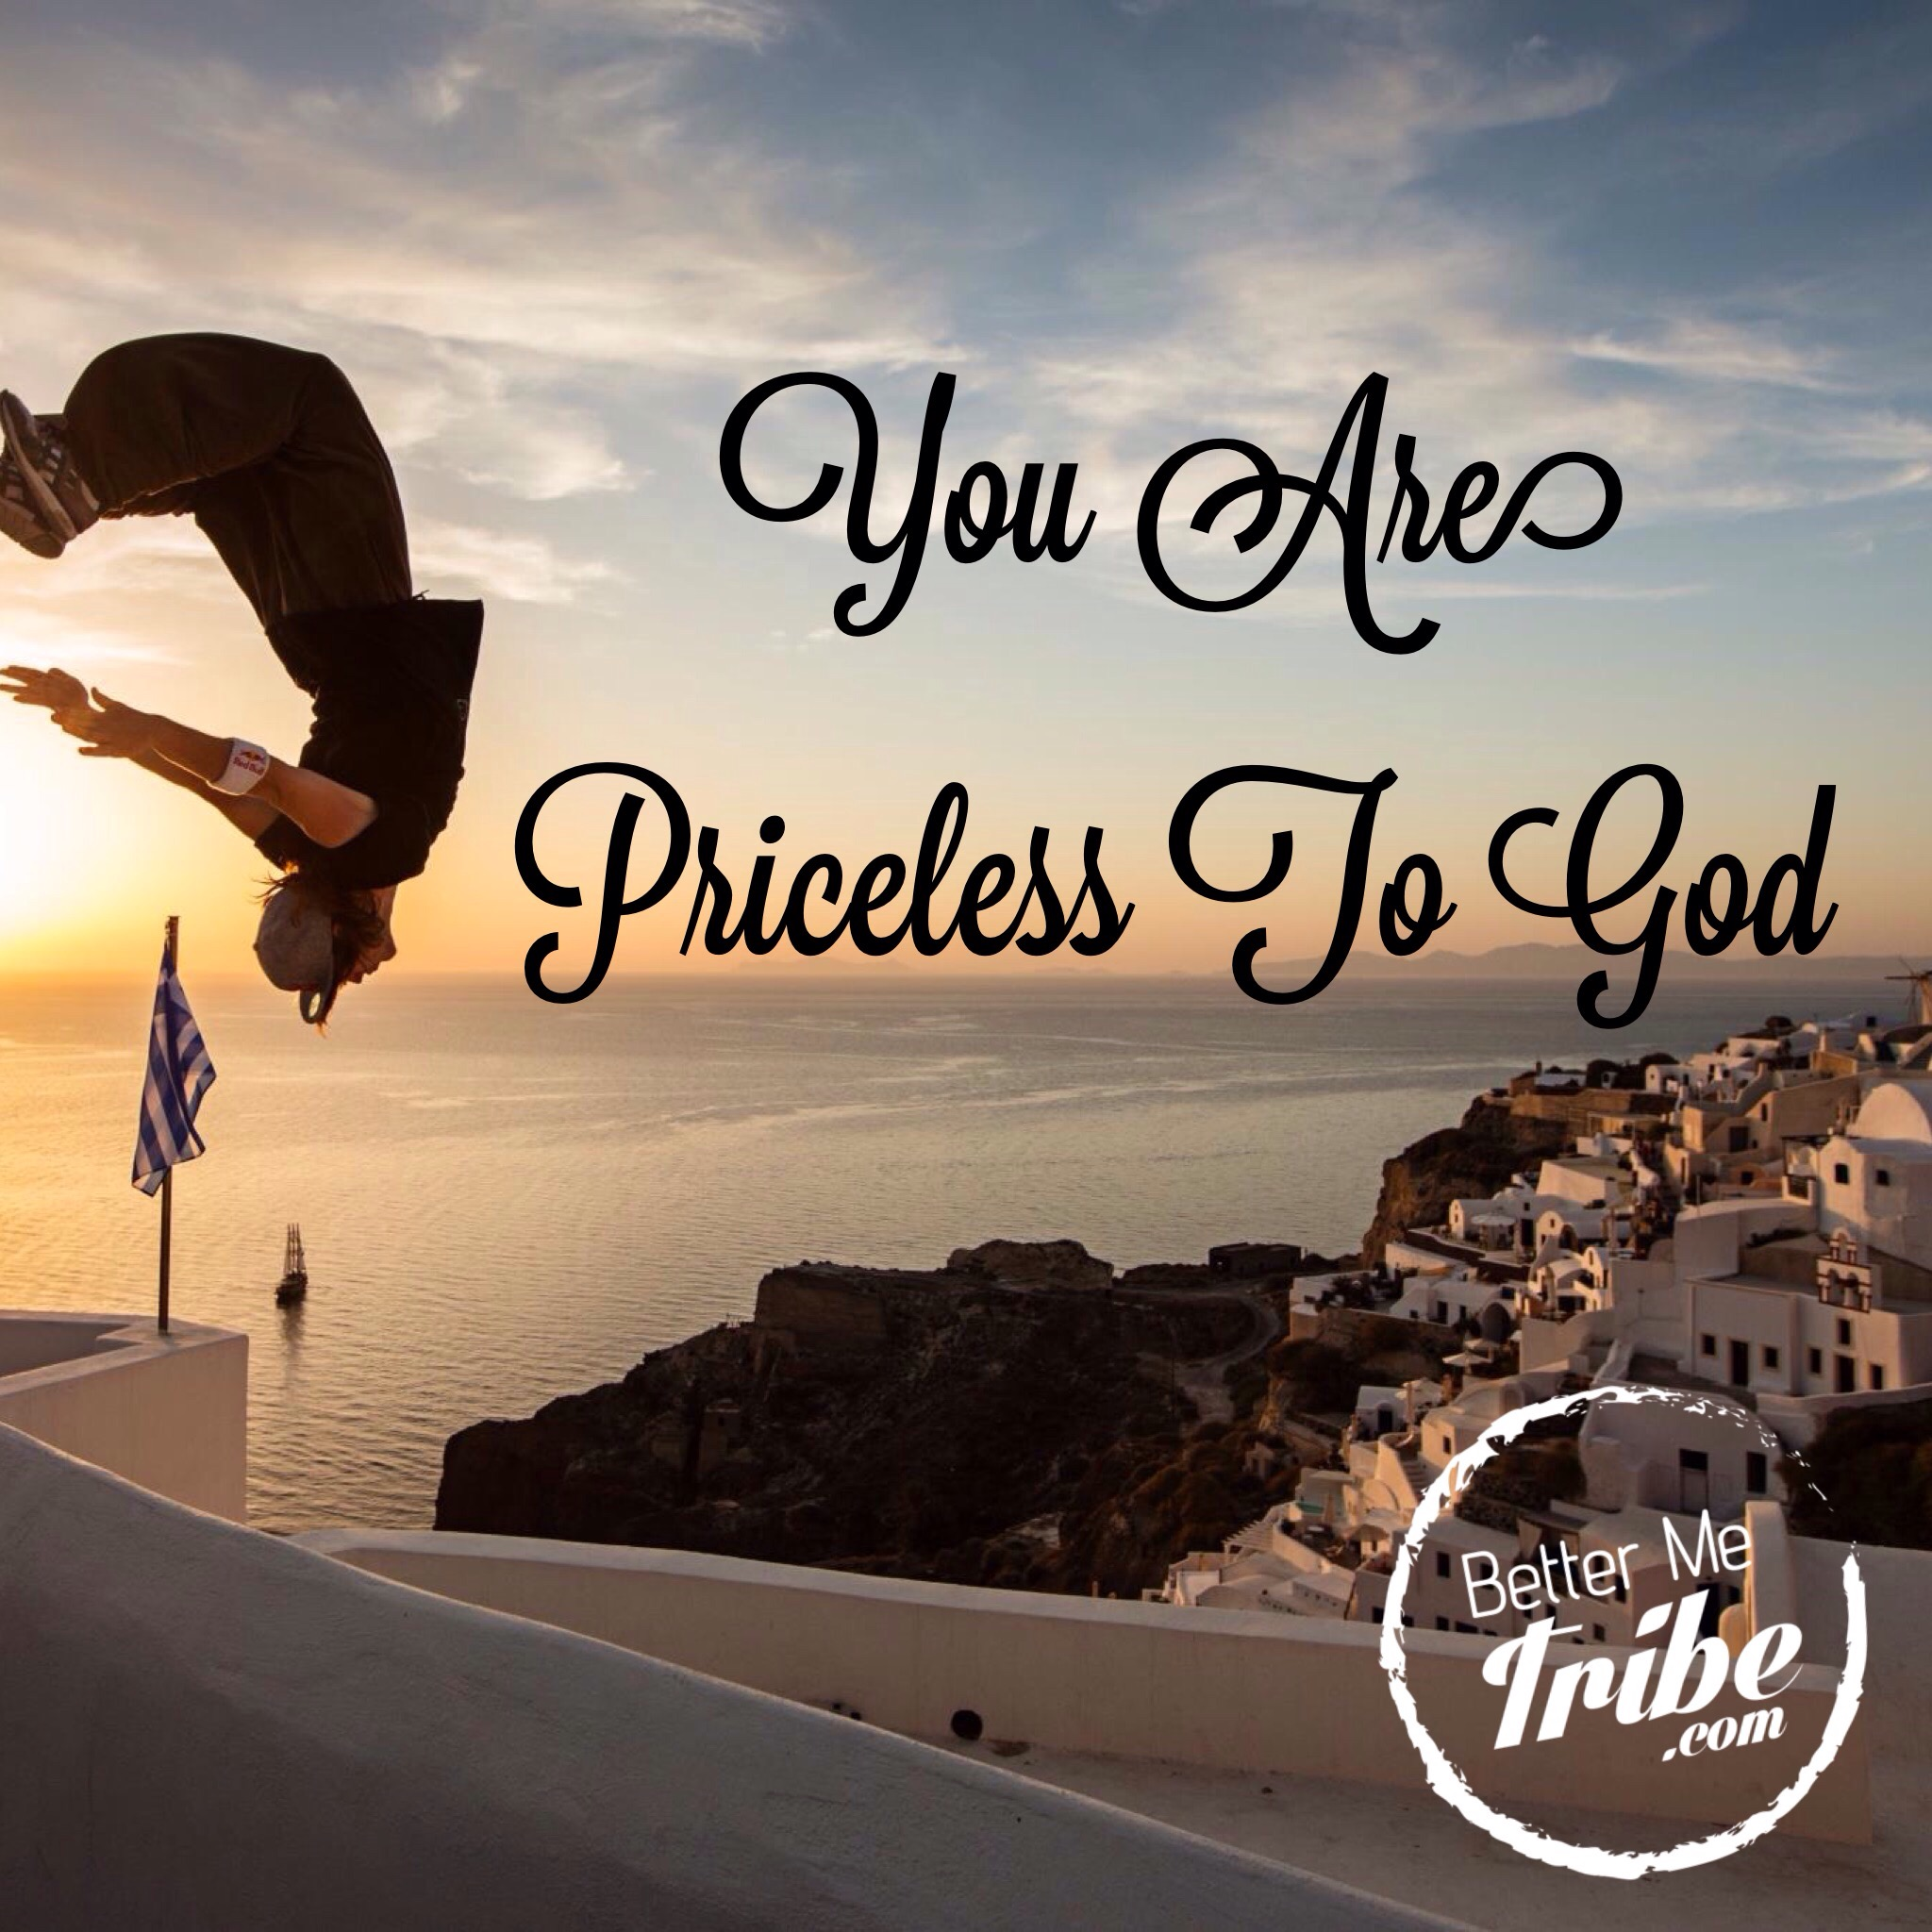 You are Priceless to God